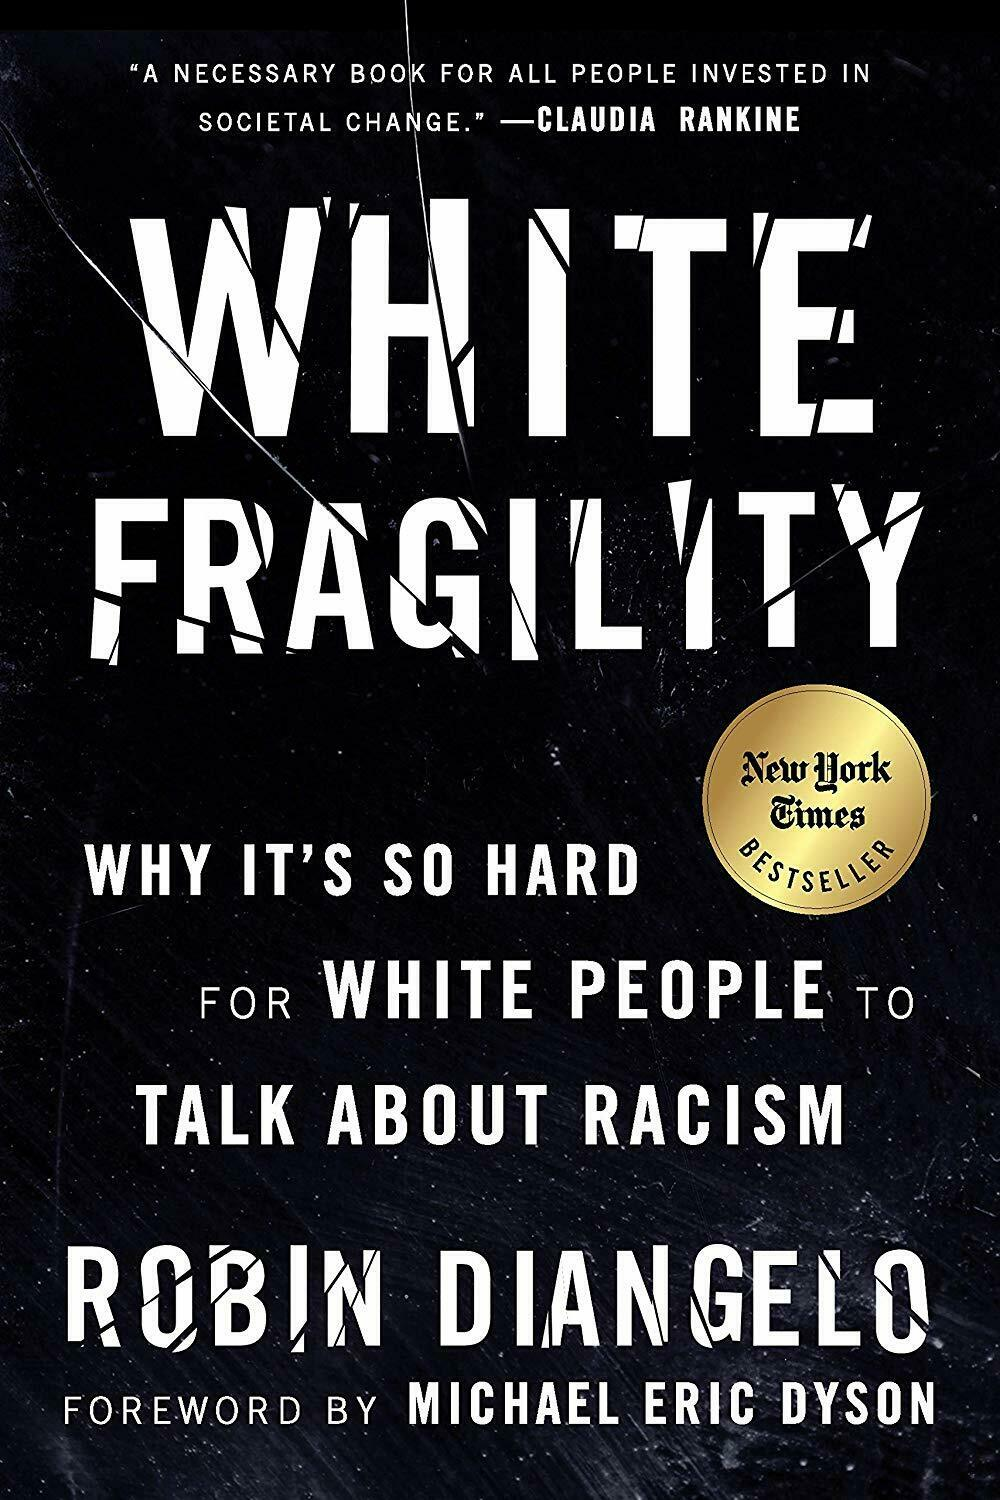 White-Fragility-book-cover